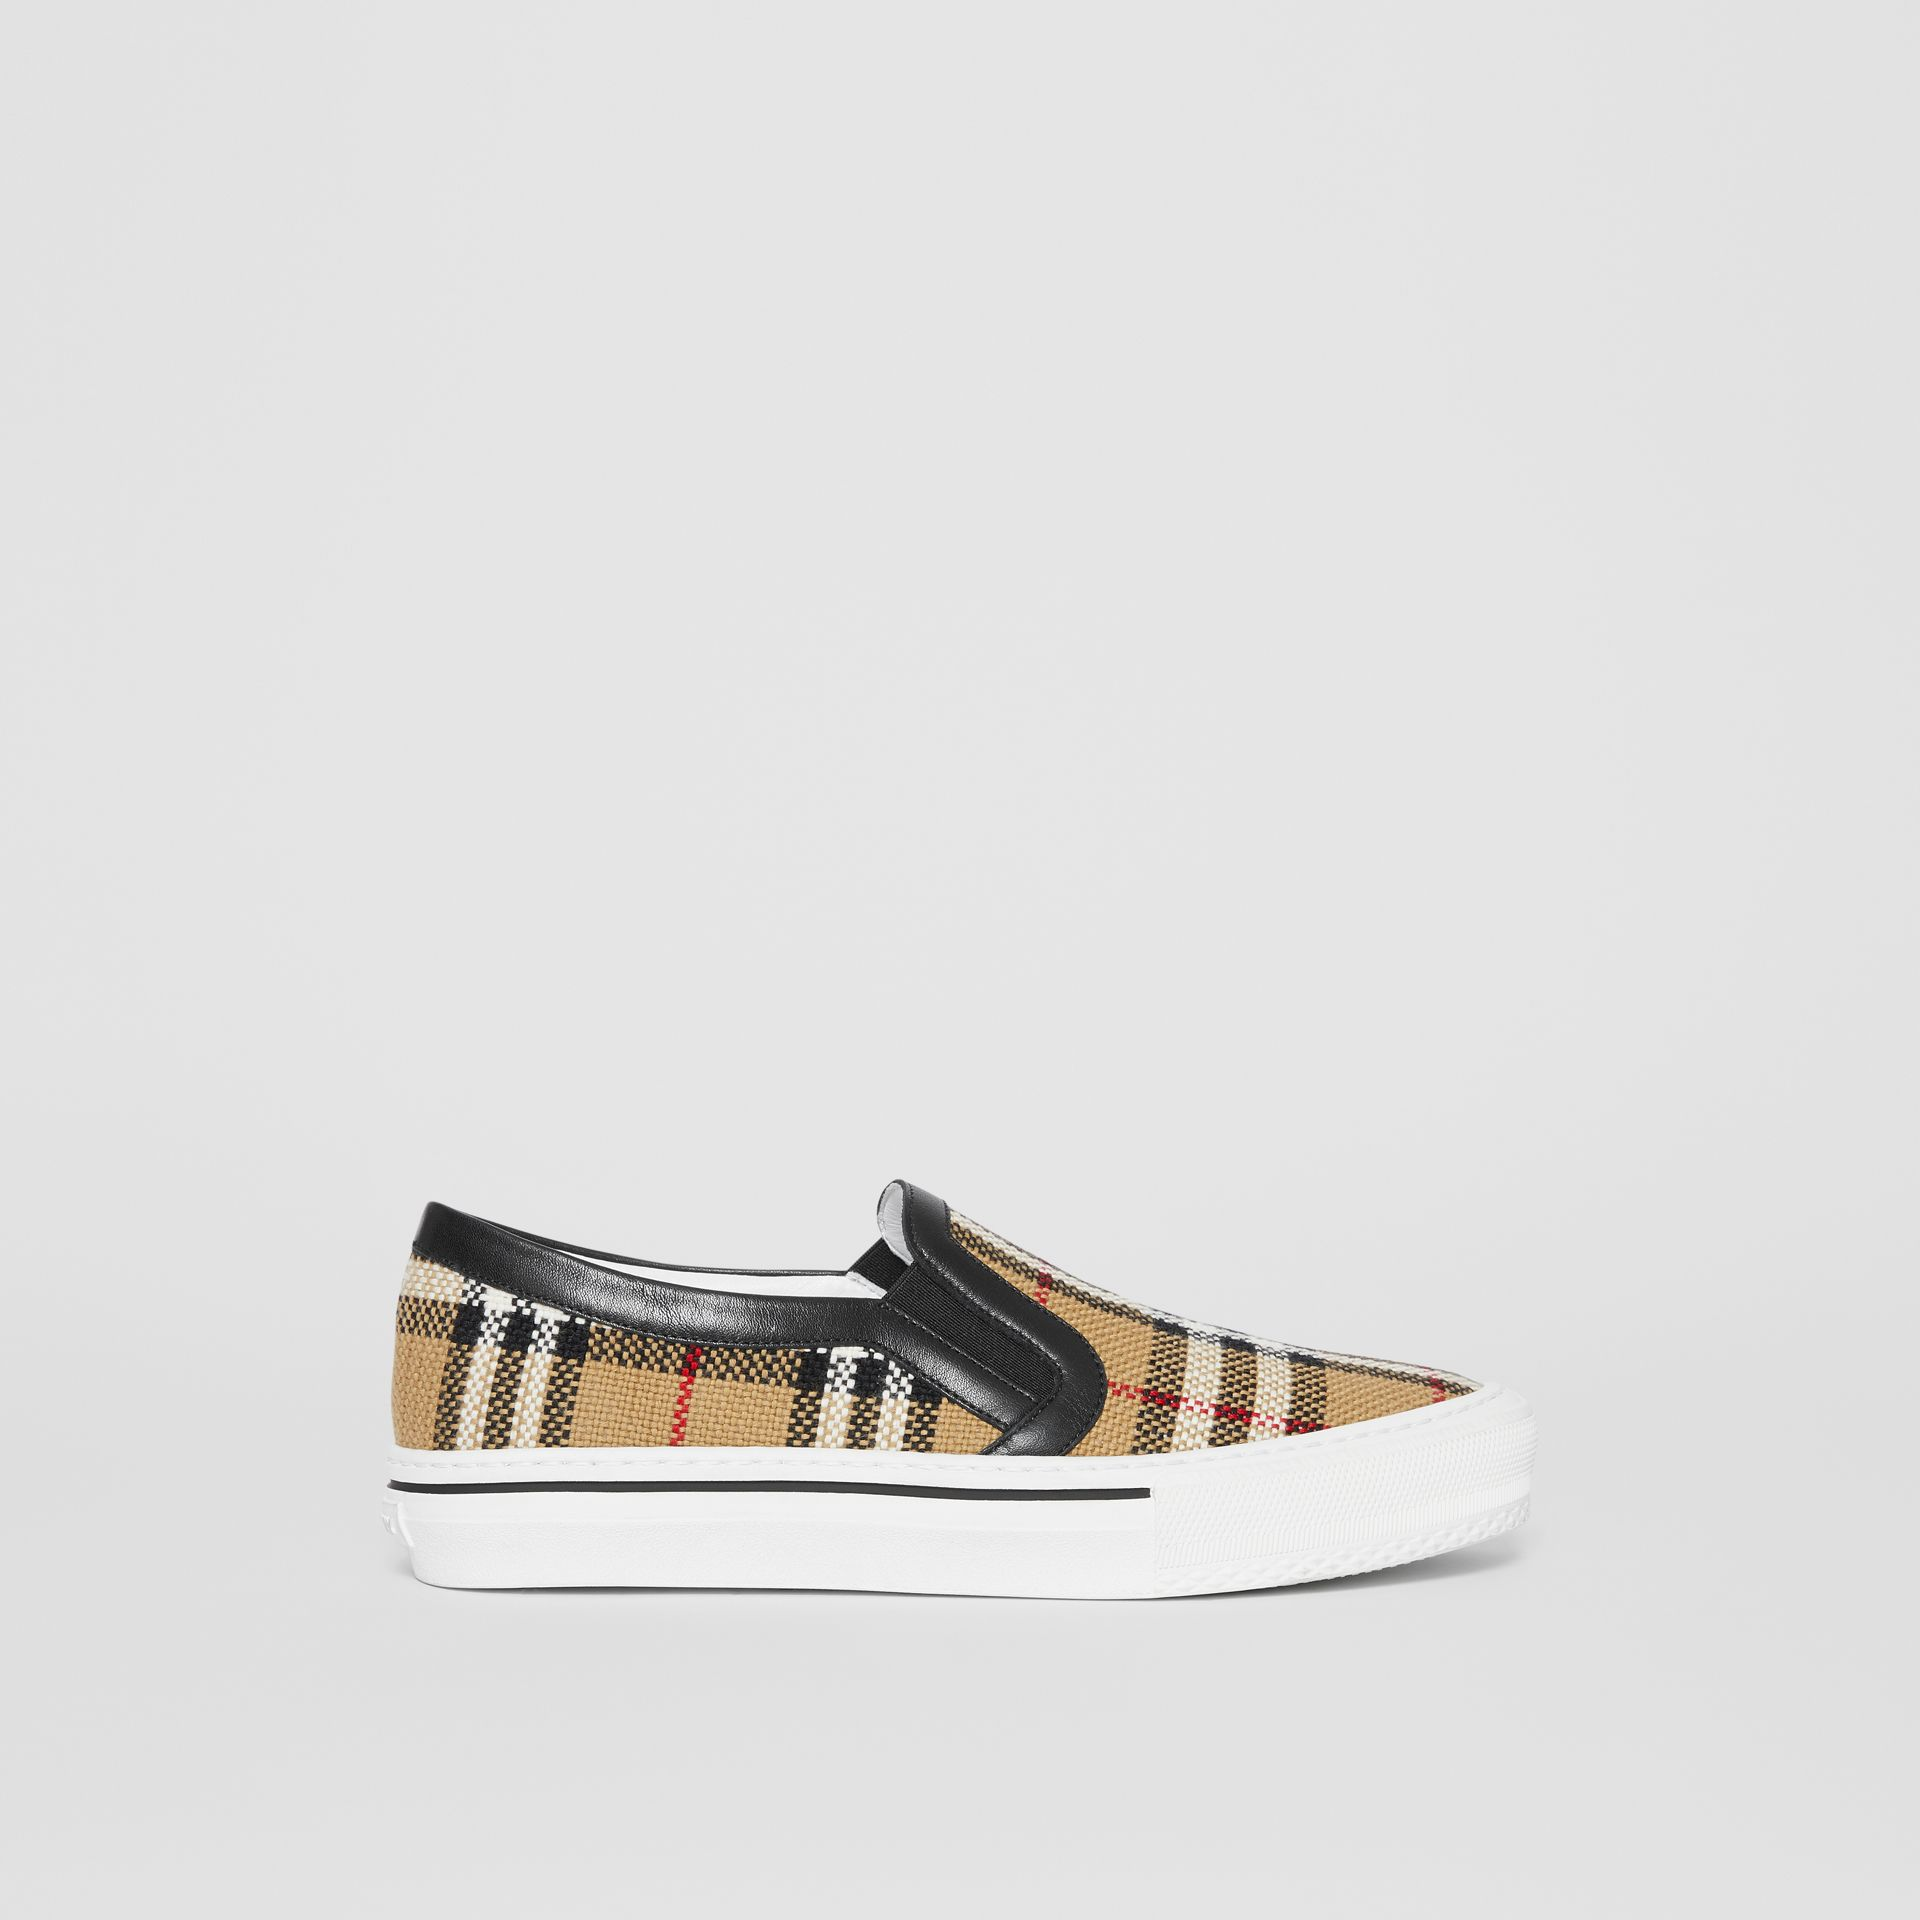 Vintage Check and Leather Slip-on Sneakers in Archive Beige - Women | Burberry - gallery image 5